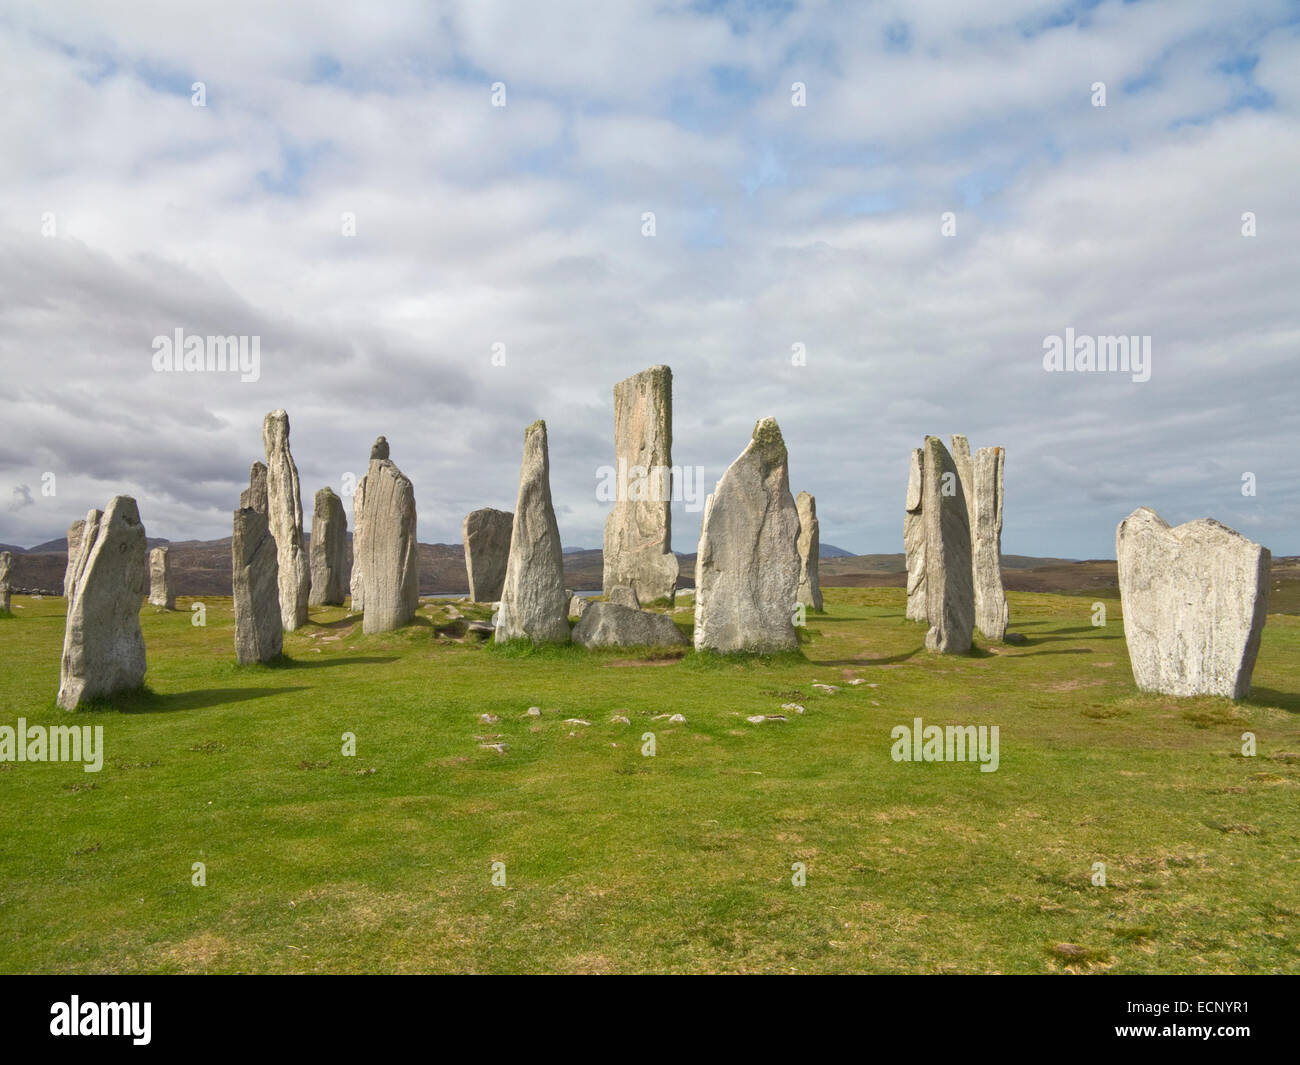 Calanais Standing Stones at Callanish a Bronze Age stone circle on Isle of Lewis, Outer Hebrides, Scotland Stock Photo